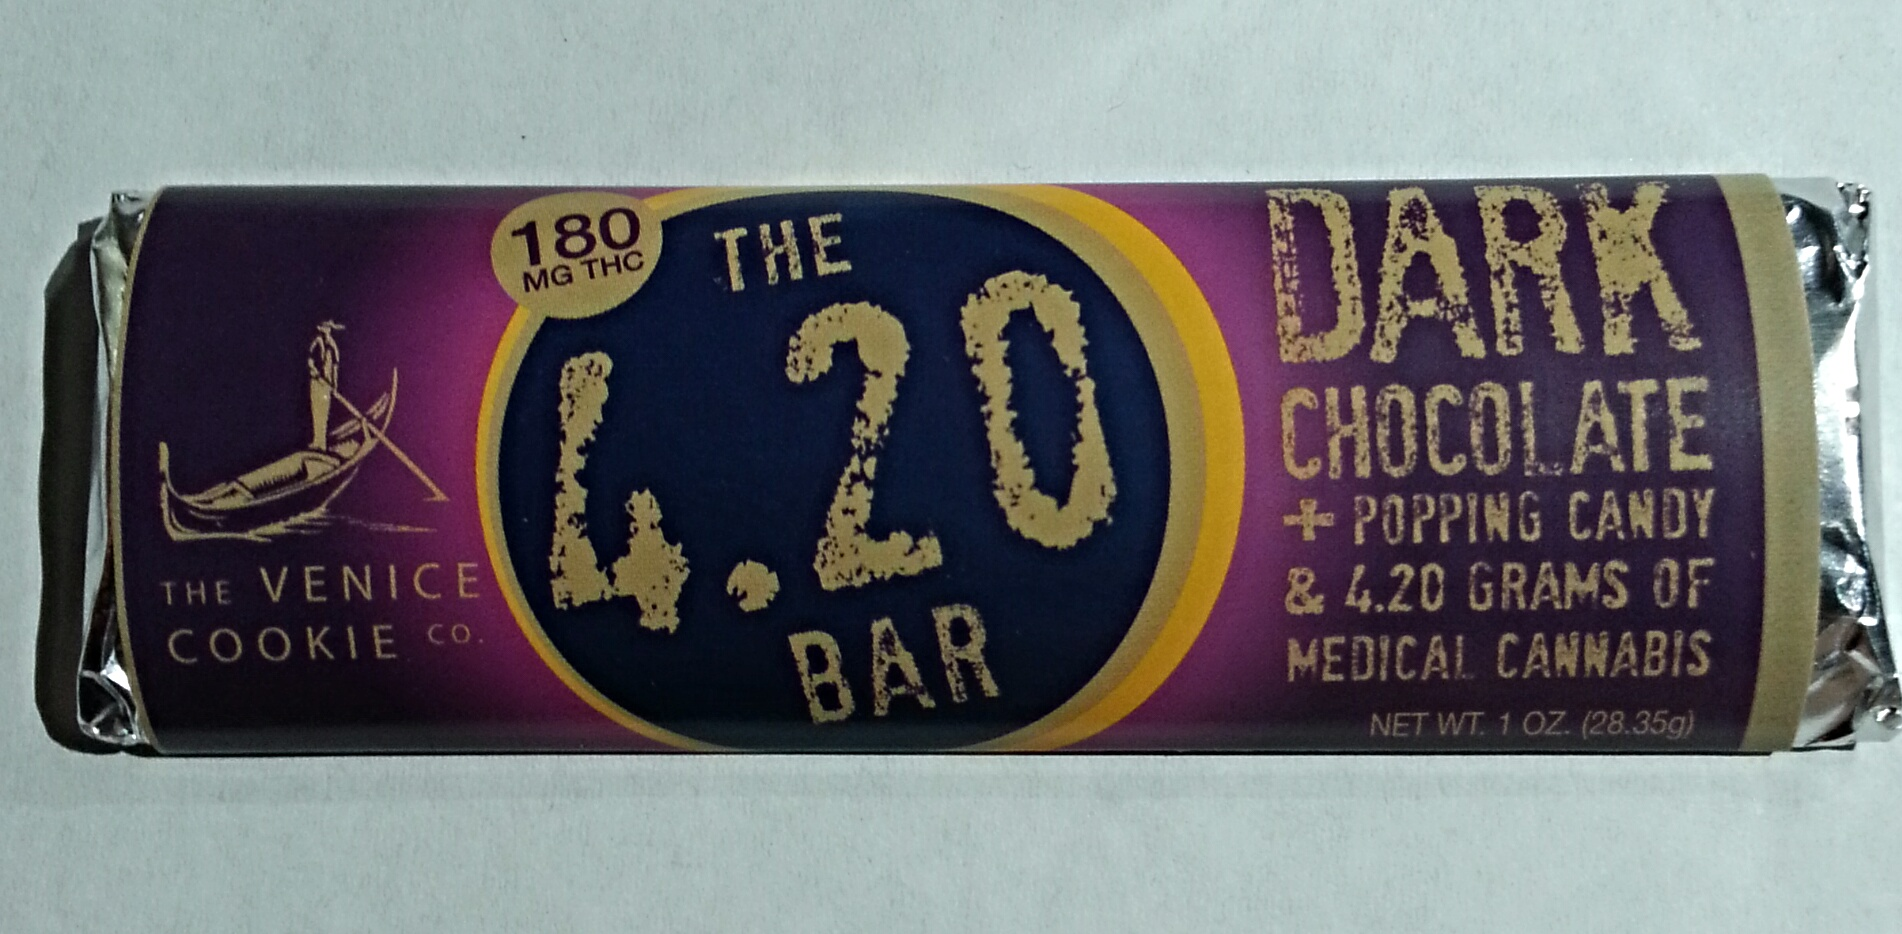 Dark Chocolate and Popping Candy 4.20 Bar from The Venice Cookie Company Edible Review